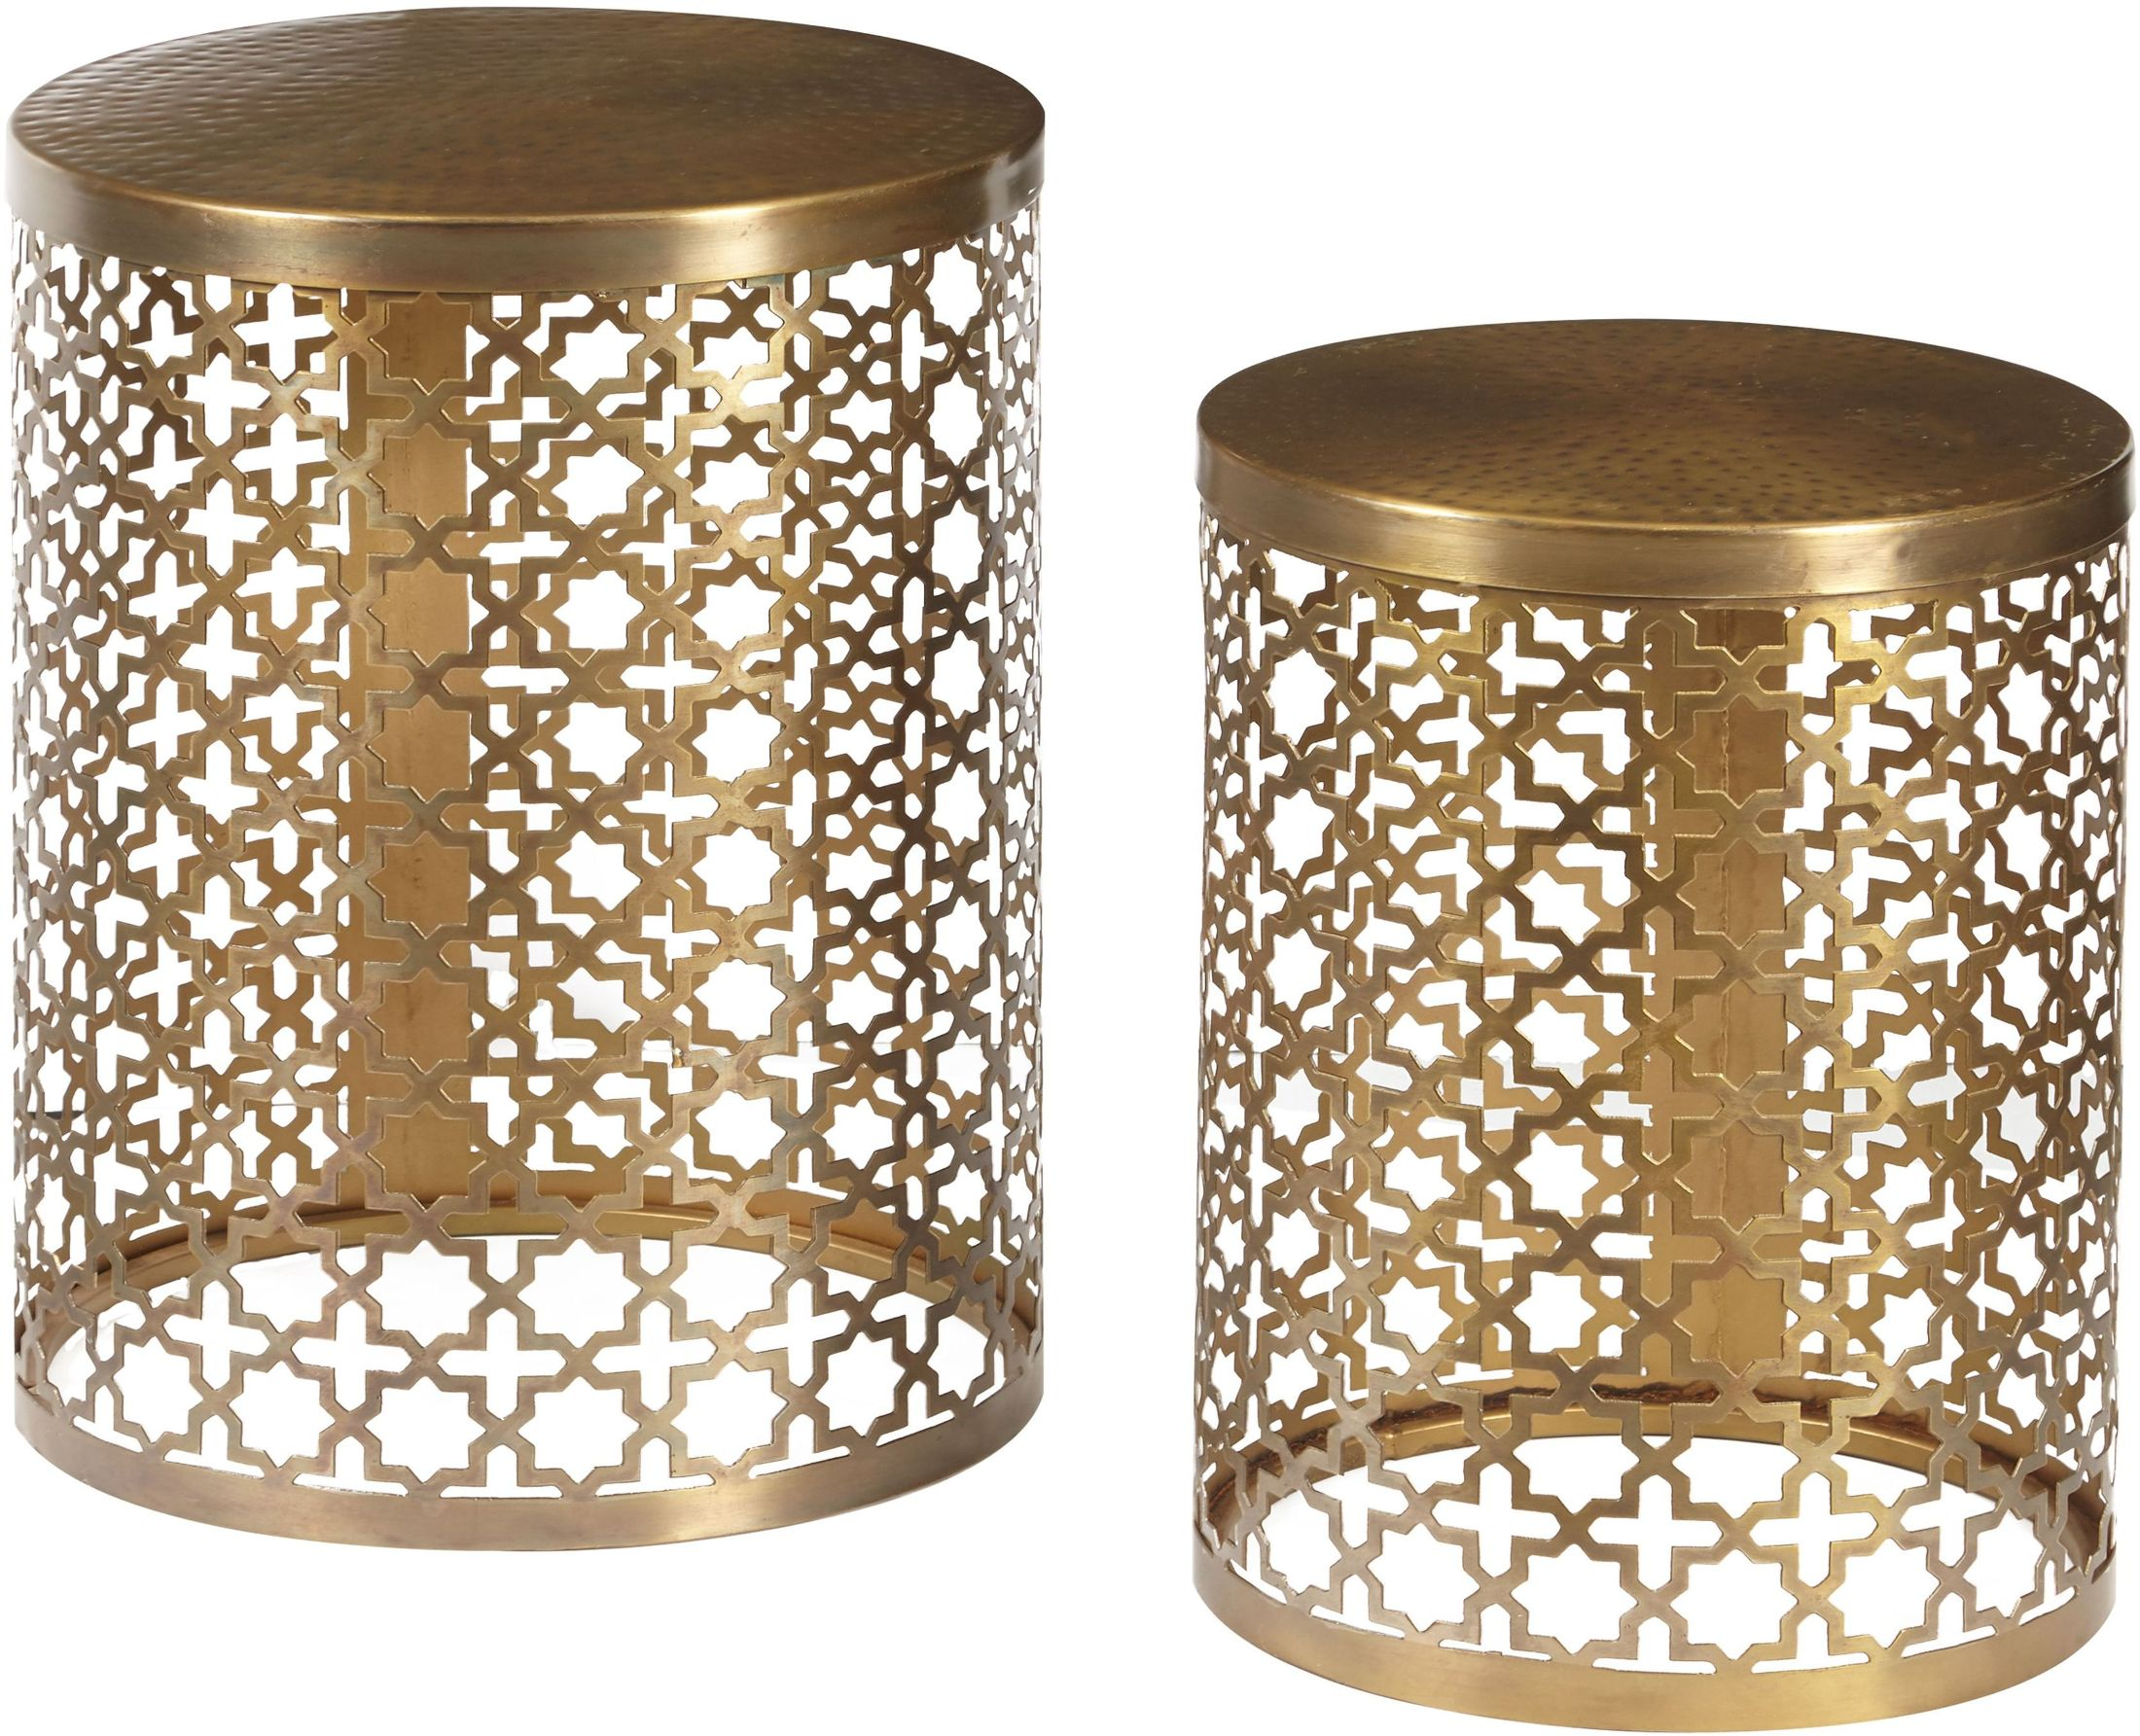 pulaski round perforated metal brass accent table set oak nightstand square outdoor tablecloth pier wicker target wall art west elm arch lamp small cover cardboard inch white drop